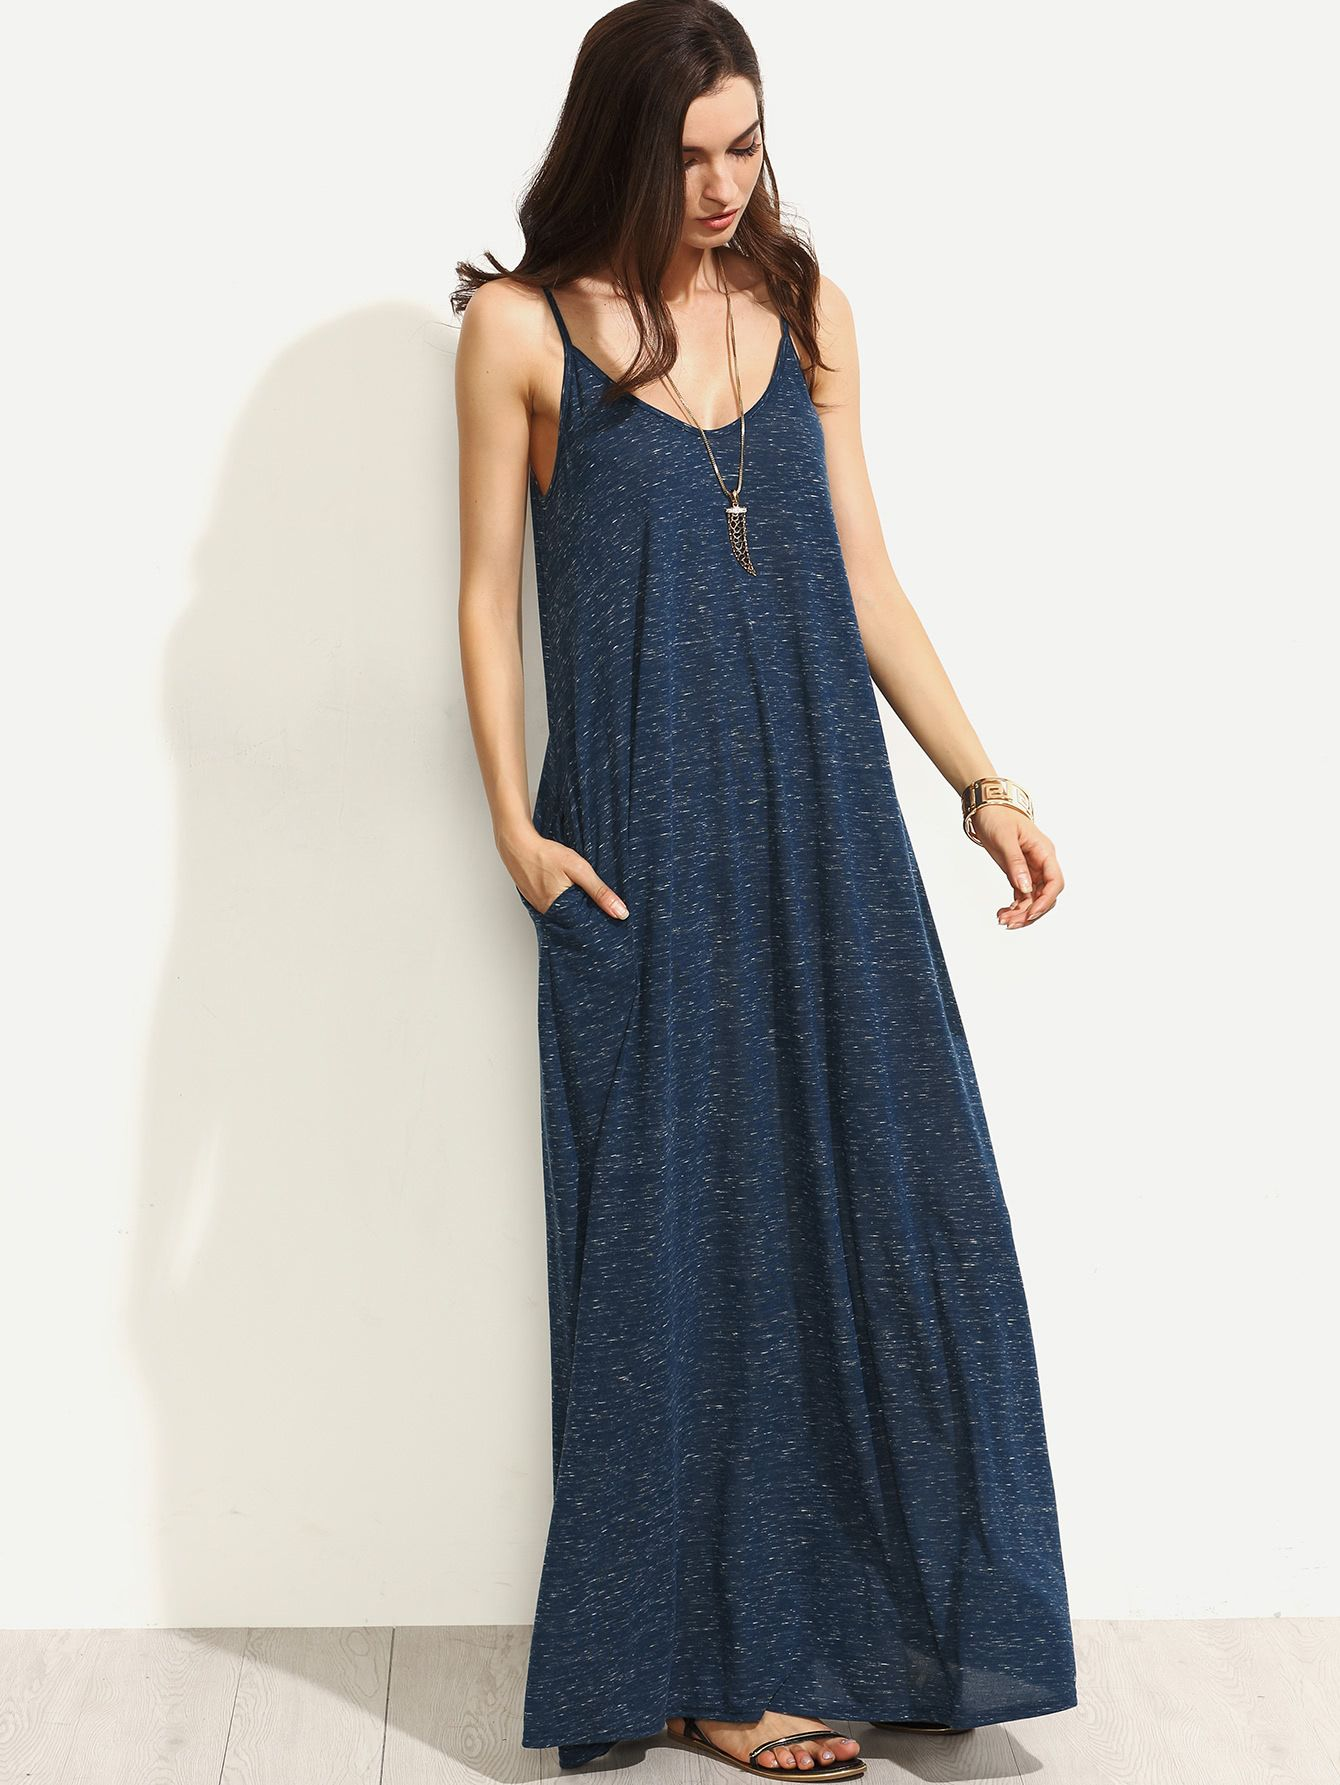 7d89fba4705 Shop Heather Navy Full Length Swing Dress online. SheIn offers Heather Navy Full  Length Swing Dress   more to fit your fashionable needs.